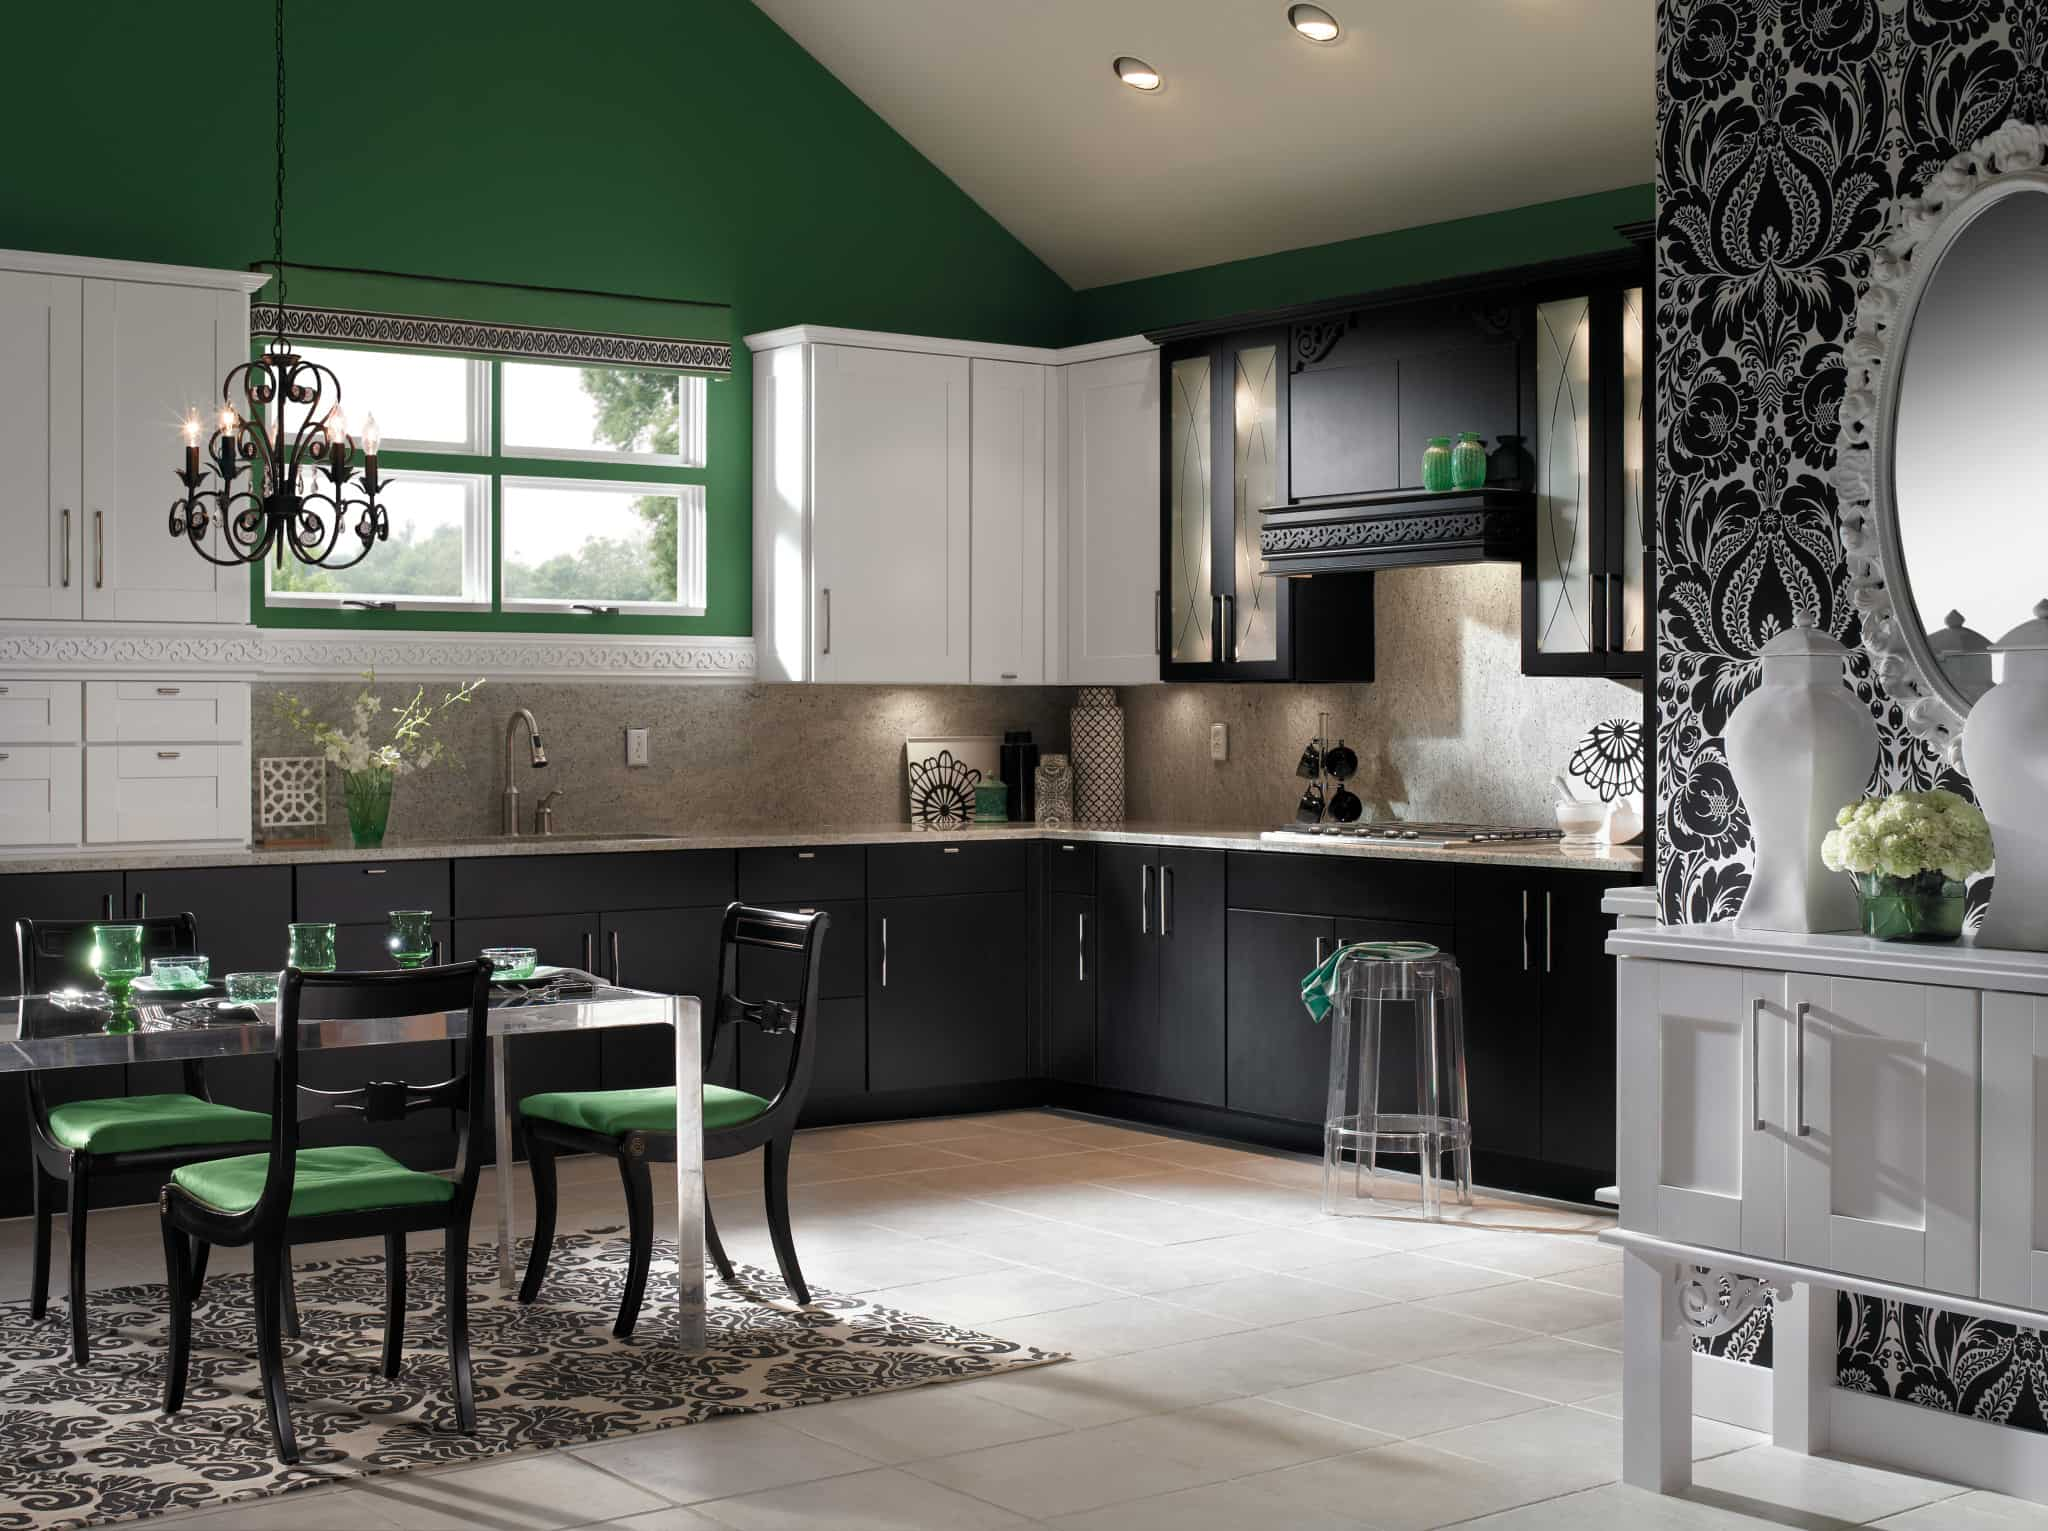 Kitchen And Bath Cabinetry Designers Malden Ma Derry Nh